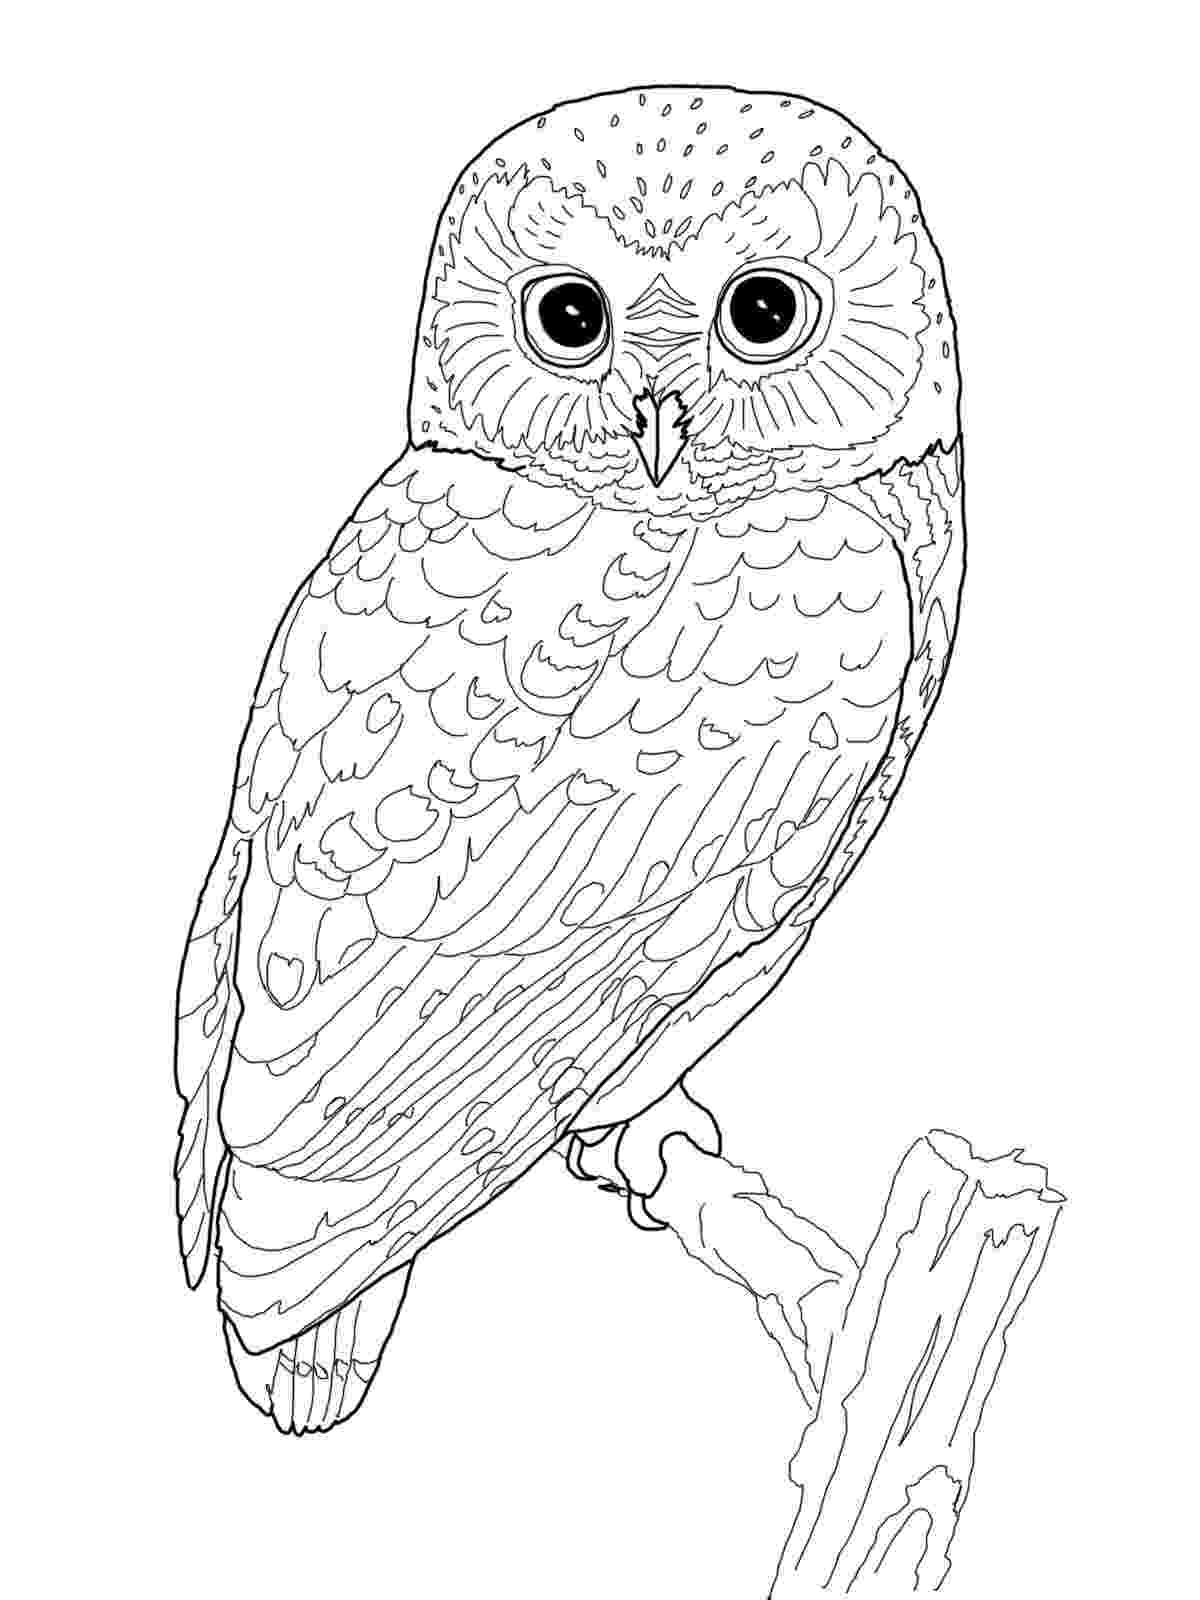 colouring pictures of owls owl coloring pages for adults free detailed owl coloring colouring owls of pictures